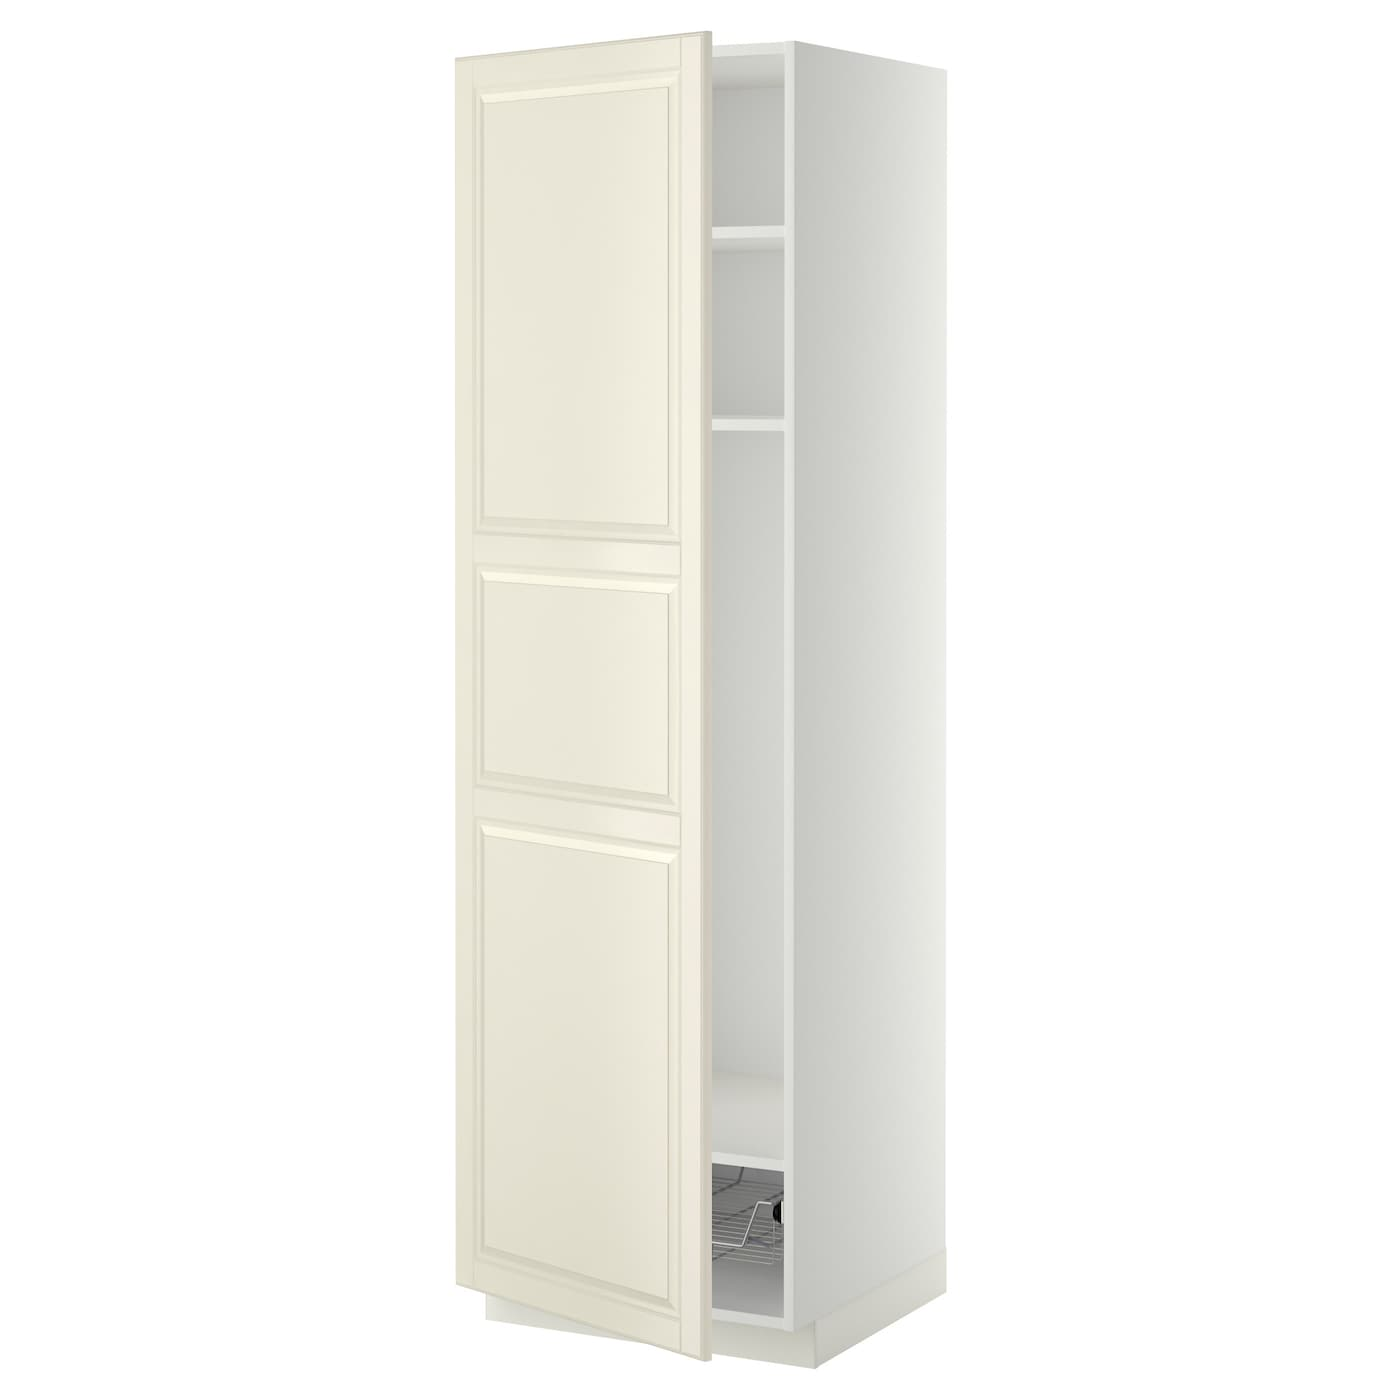 High Cabinet Kitchen: METOD High Cabinet W Shelves/wire Basket White/bodbyn Off